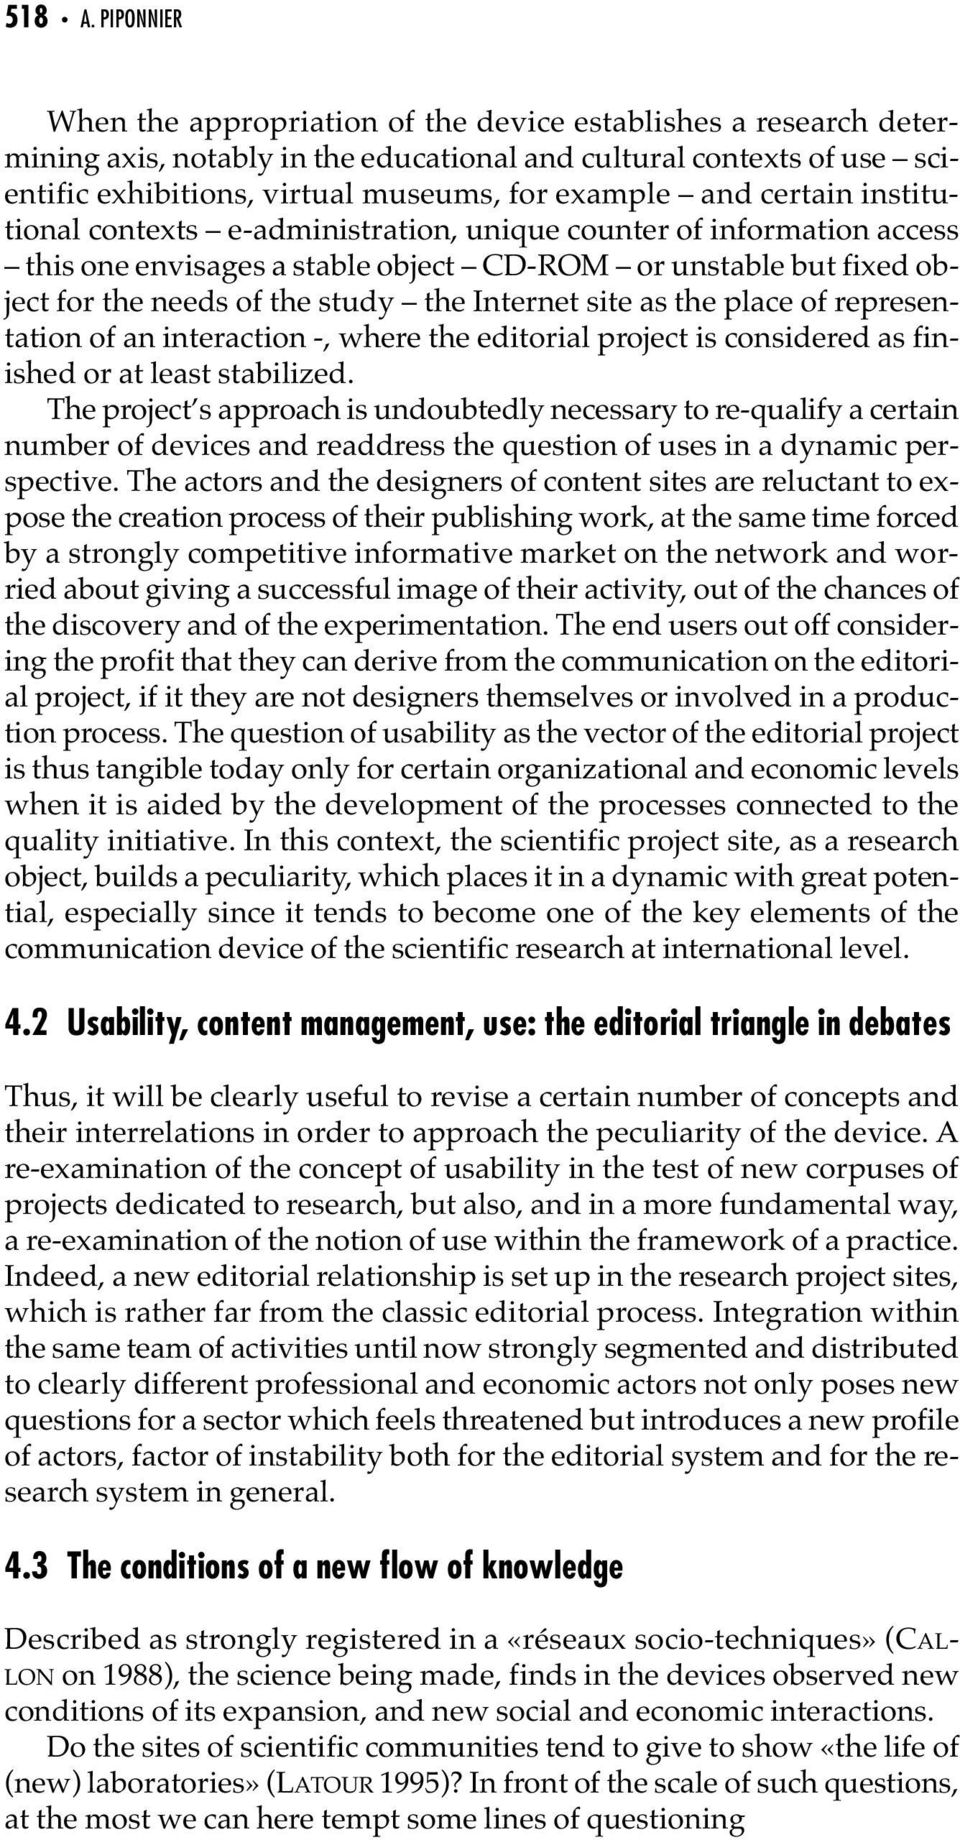 and certain institutional contexts e-administration, unique counter of information access this one envisages a stable object CD-ROM or unstable but fixed object for the needs of the study the